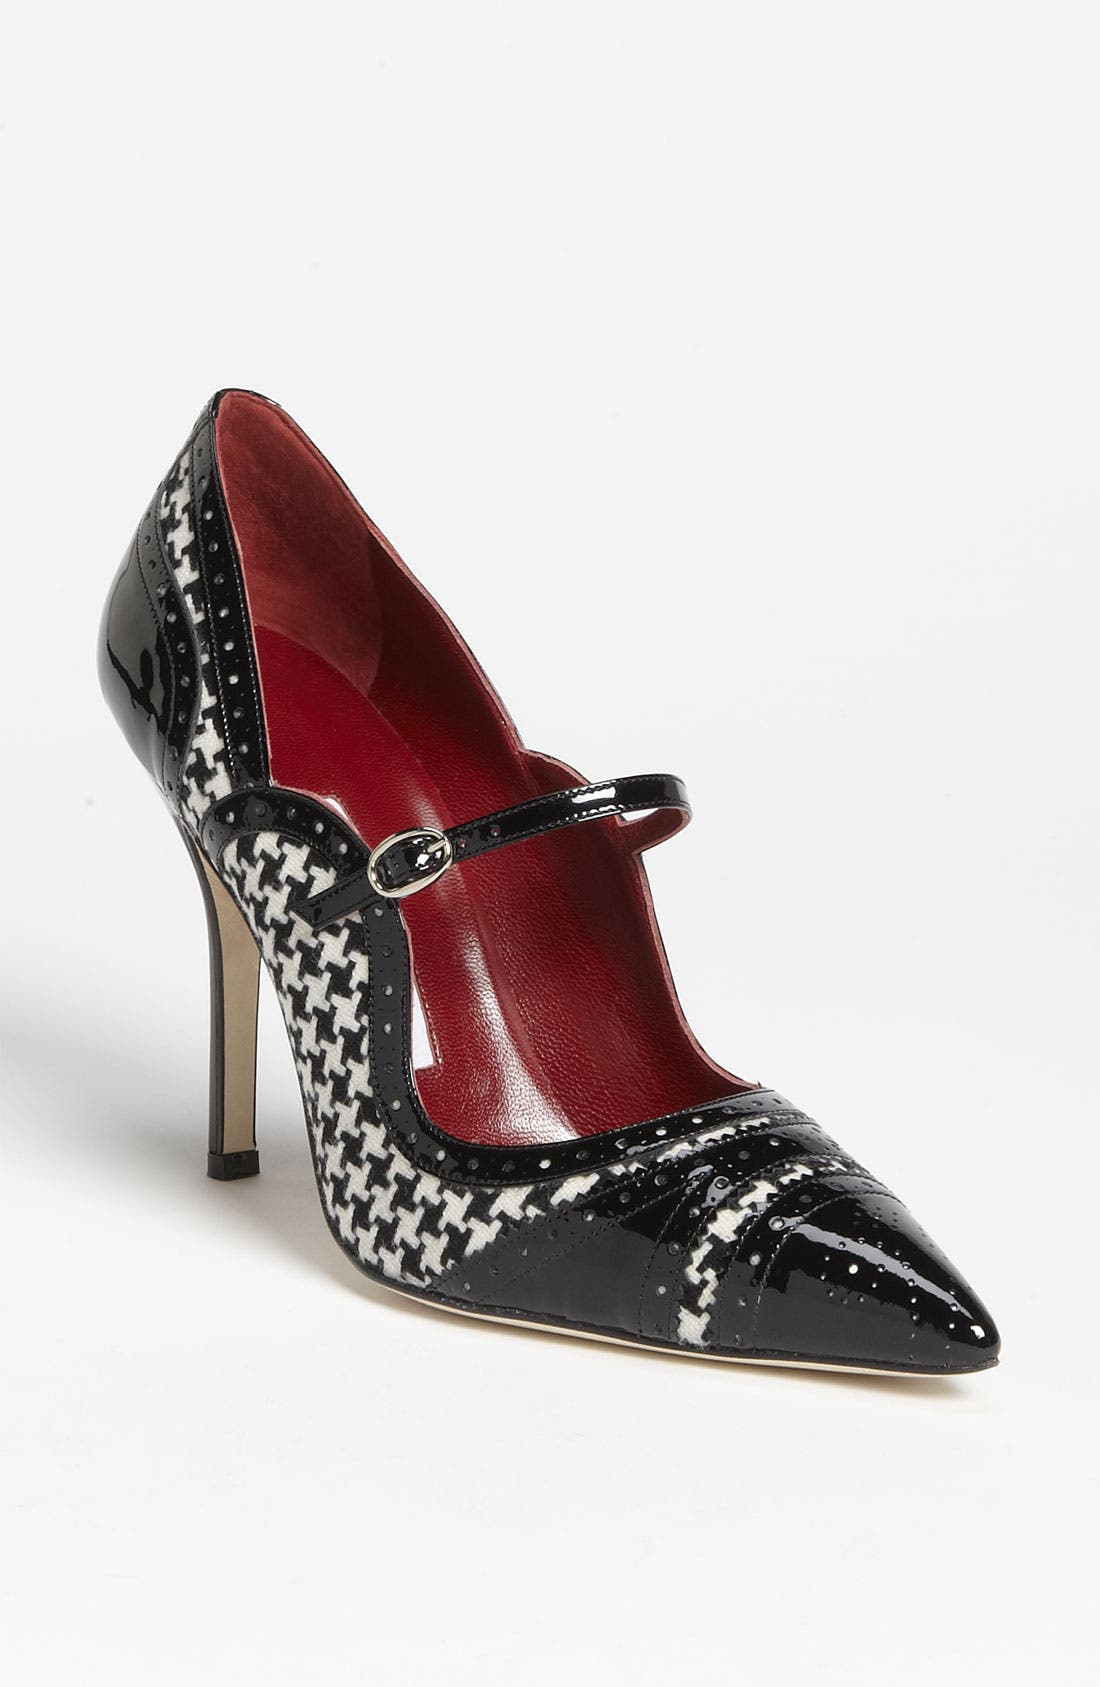 Alternate Image 1 Selected - Manolo Blahnik 'Estipula' Pump